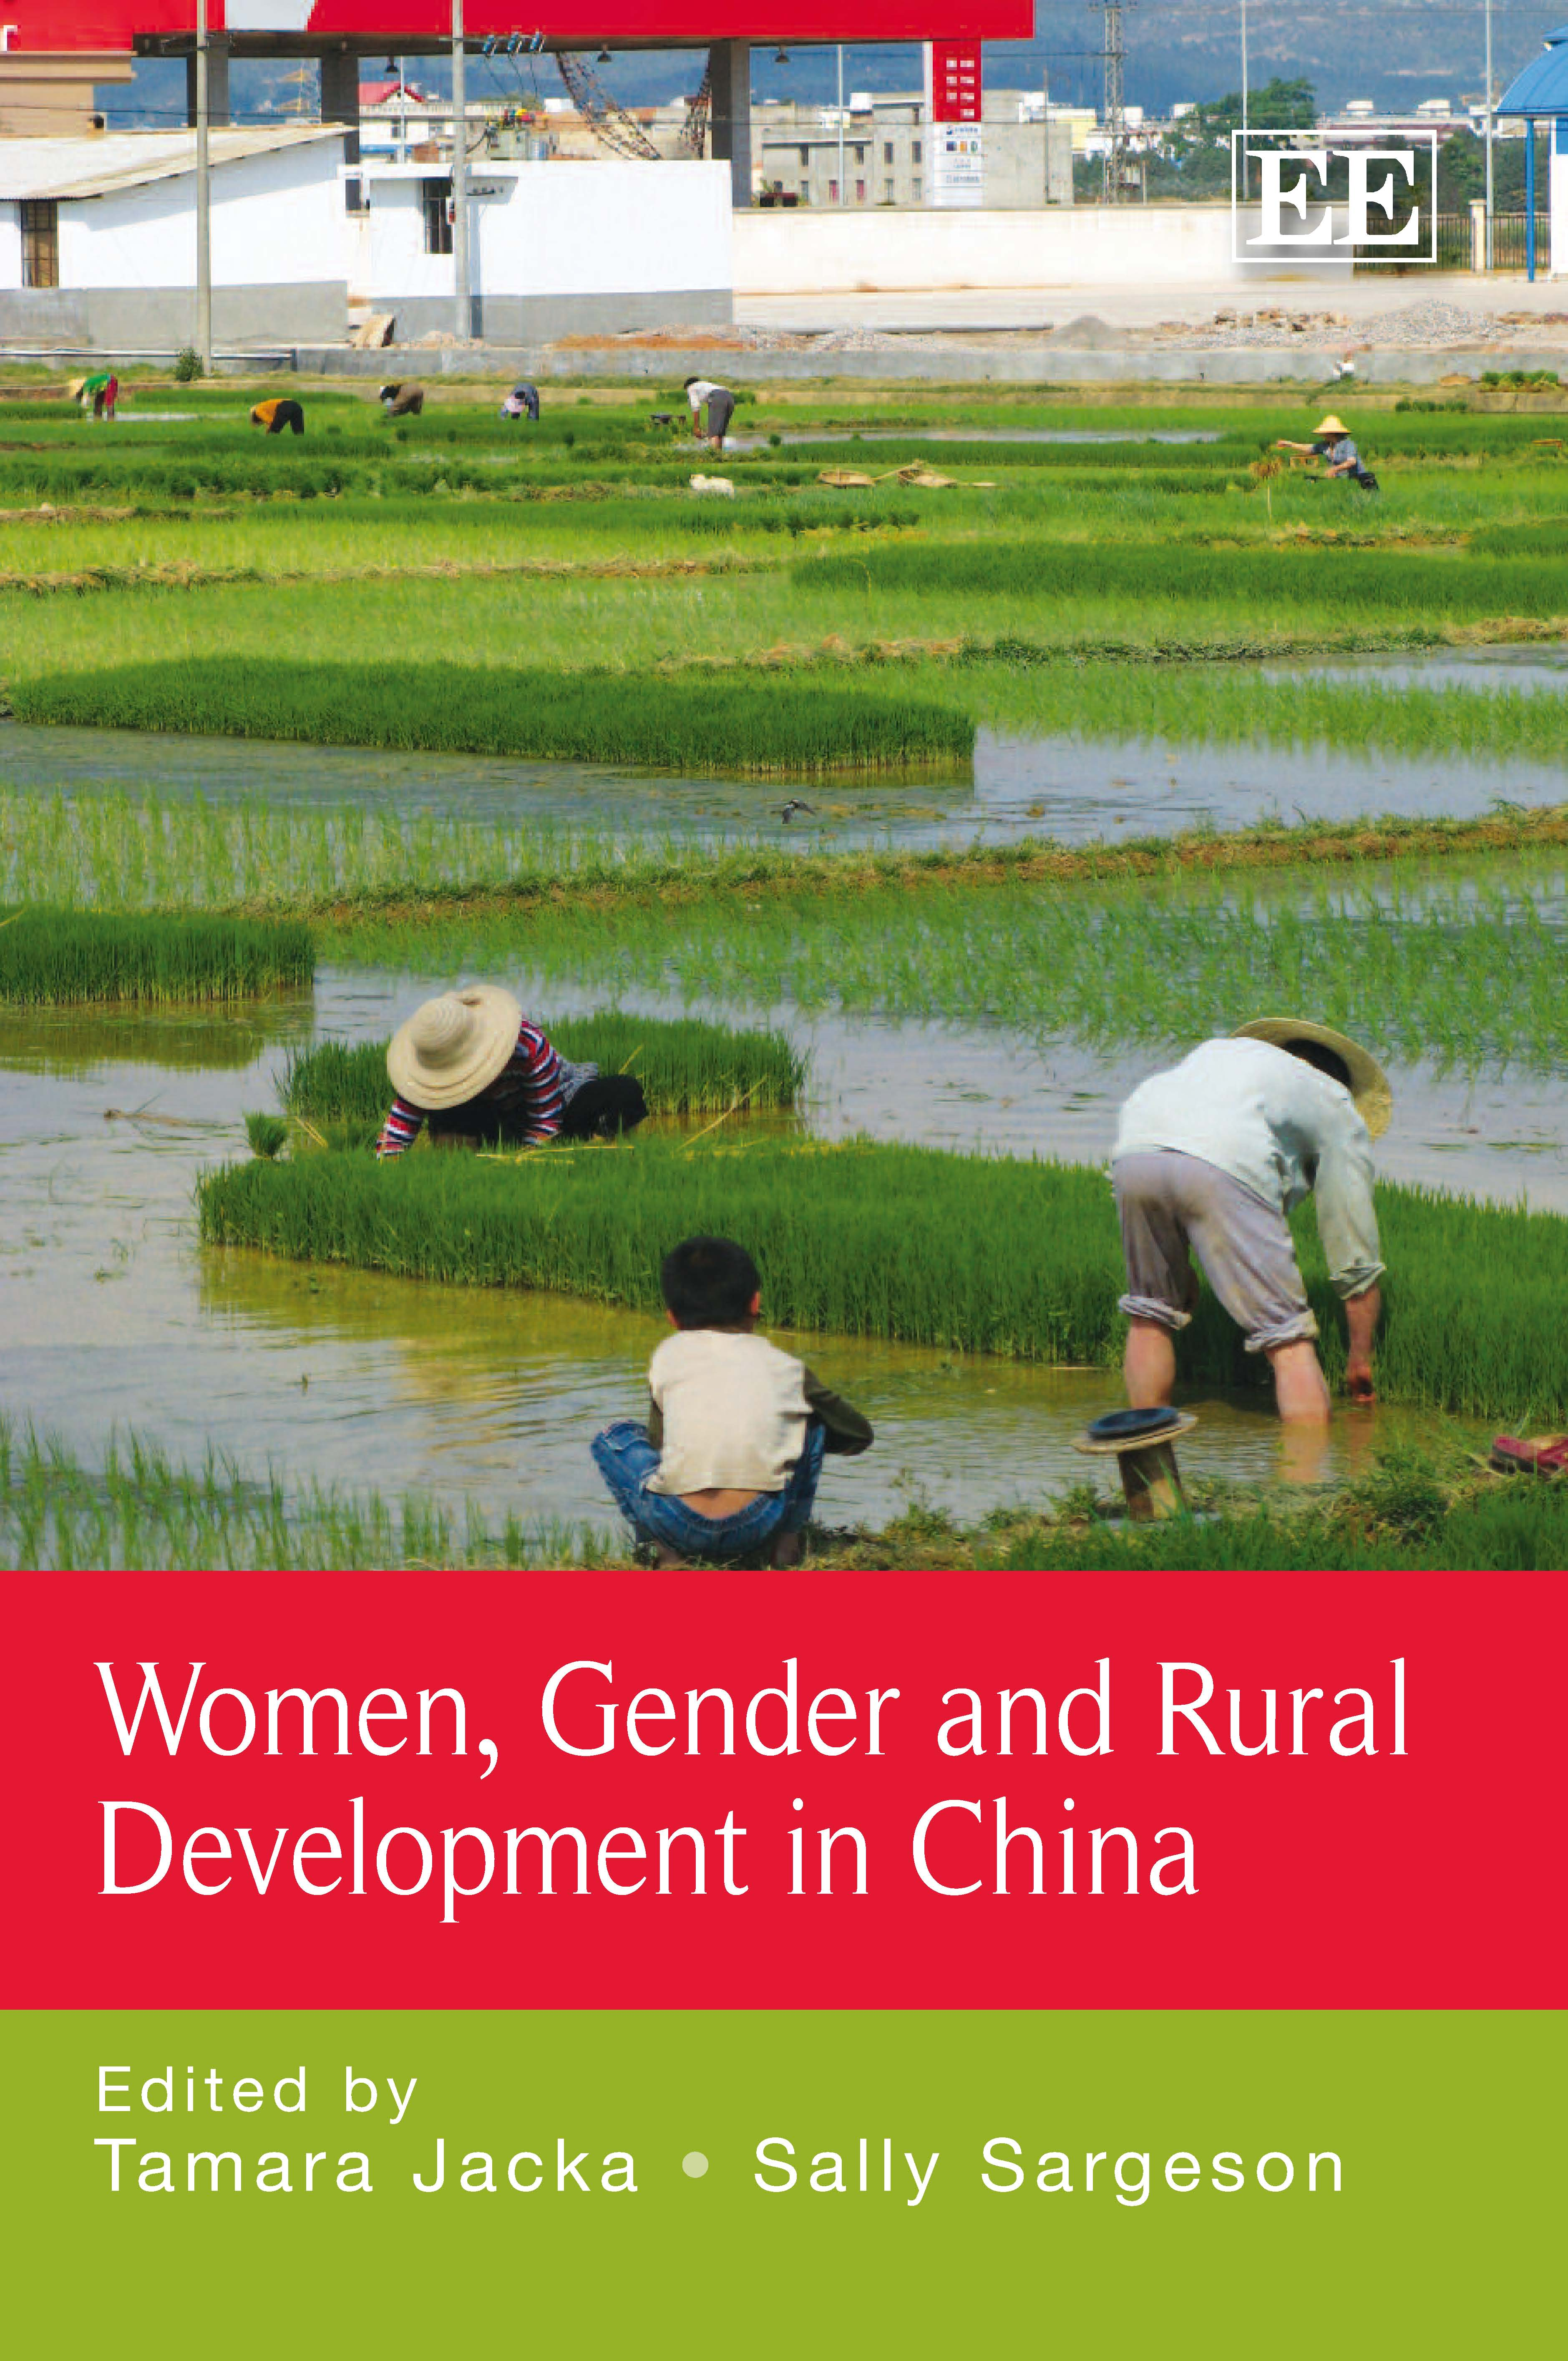 Women, Gender and Rural Development in China